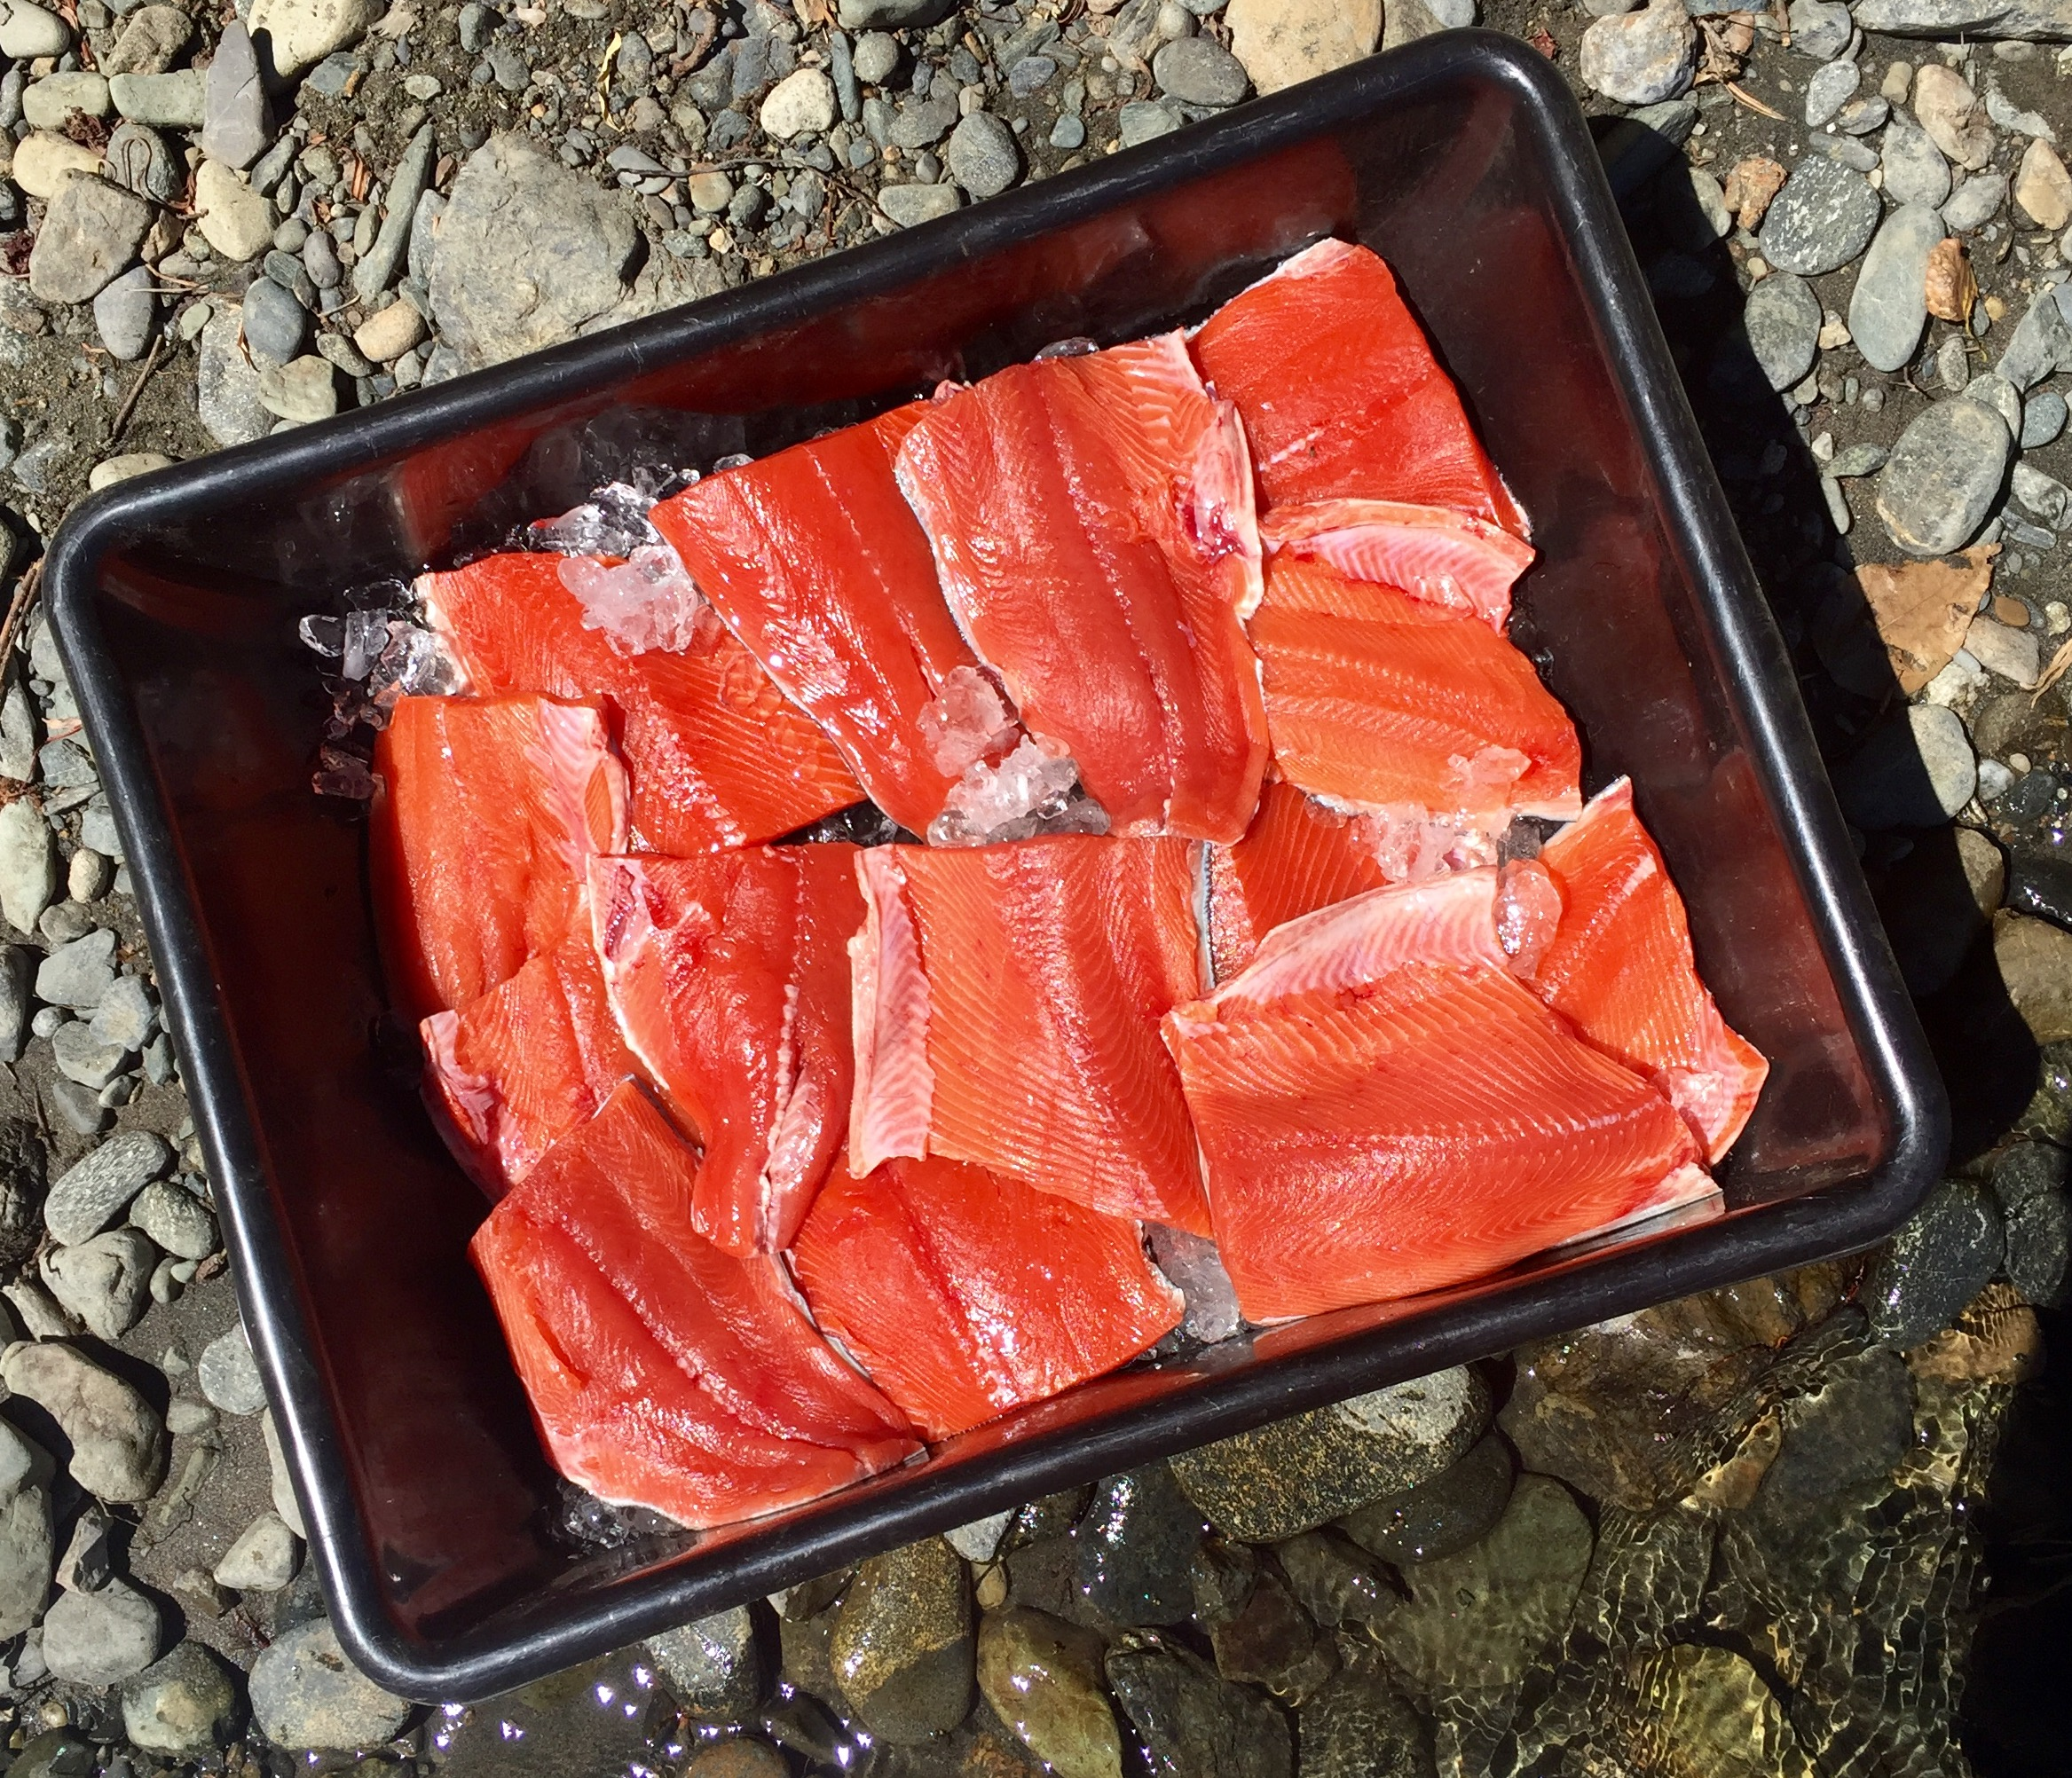 Spring Run Chinook Salmon cut brilliantly and are the best salmon to eat for consumers. These fillets were processed by Sacramento River salmon fishing guide Dave Jacobs of  https://www.salmonsacriver.com  after a day spent guiding on Northern California's Trinity River.